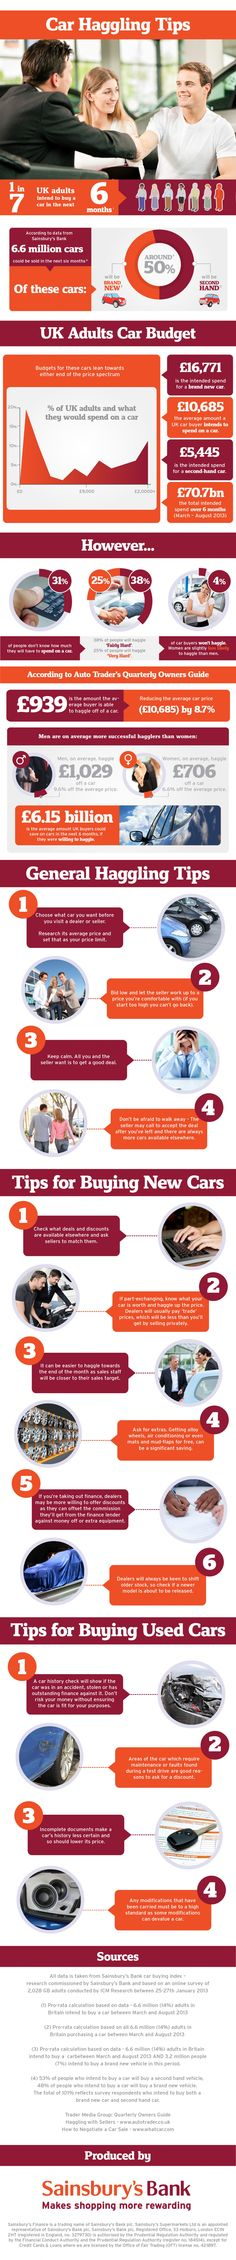 Car Haggling Tips #infographic